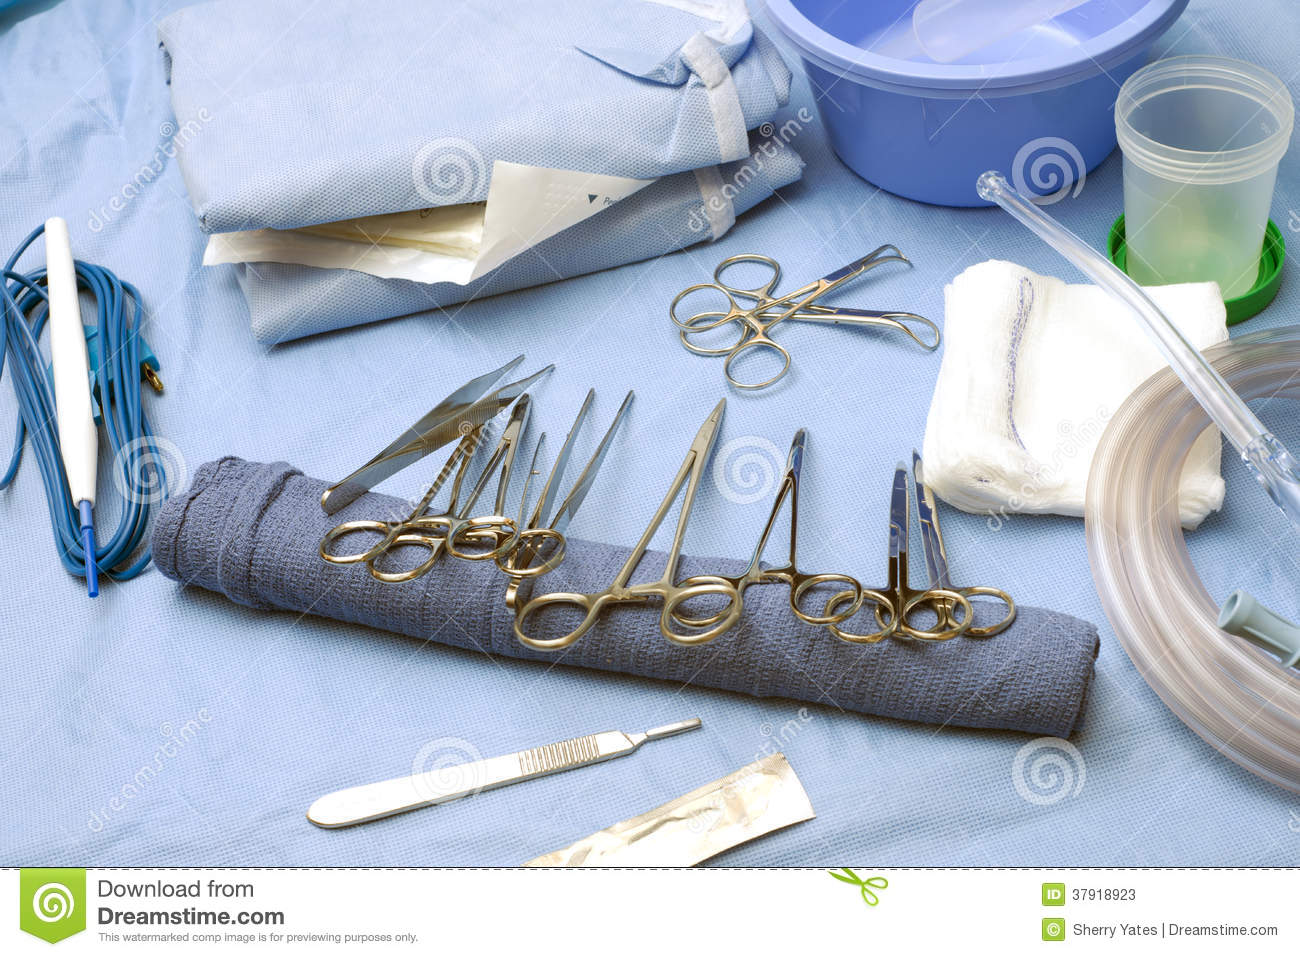 Surgical Tech Supplies for Pinterest Veterinary Tools Clip Art